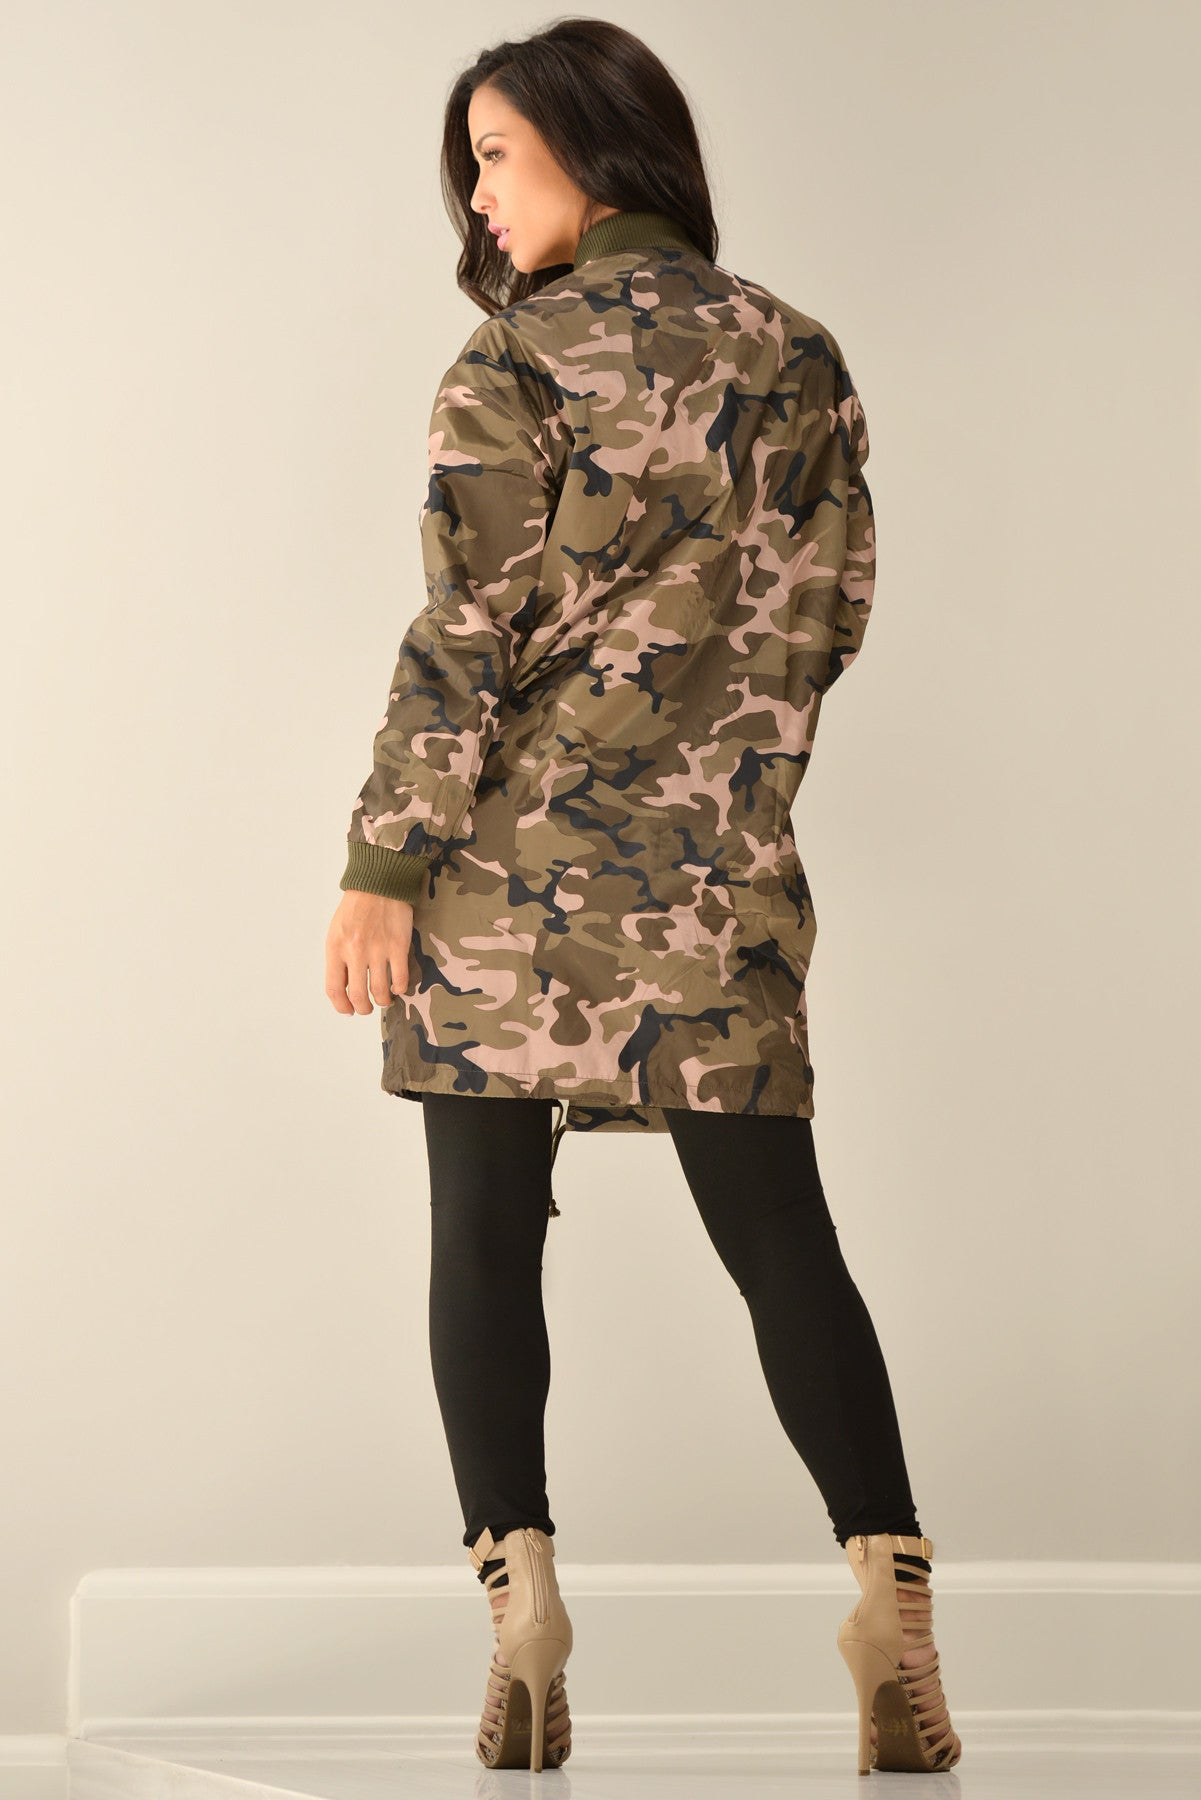 RESTOCK Holly Camo Jacket - Fashion Effect Store  - 3